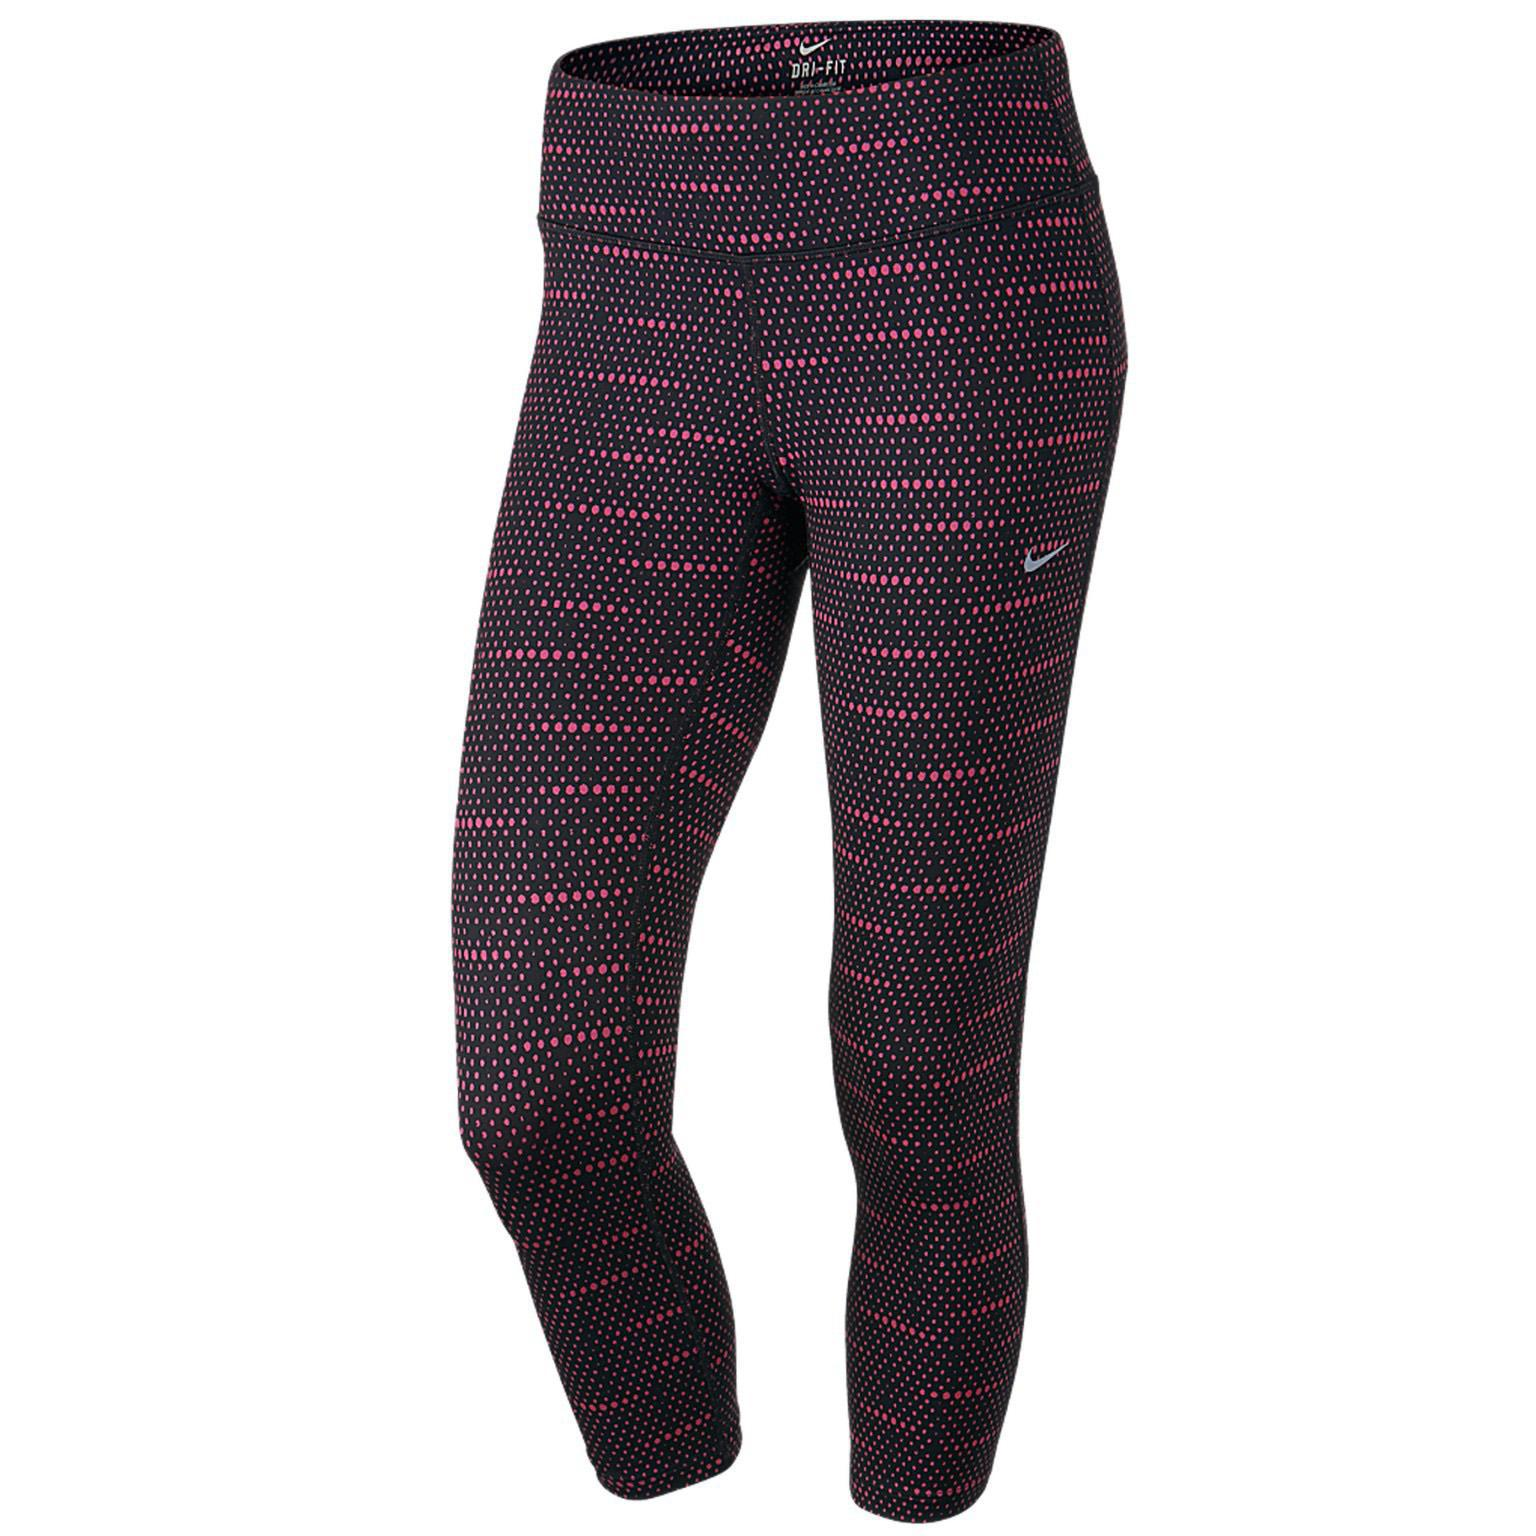 ... factory outlets 83329 488bf Nike Womens Dri-FIT Epic Run Tights -  BlackHot Pink ... 117ef9e5c0c2